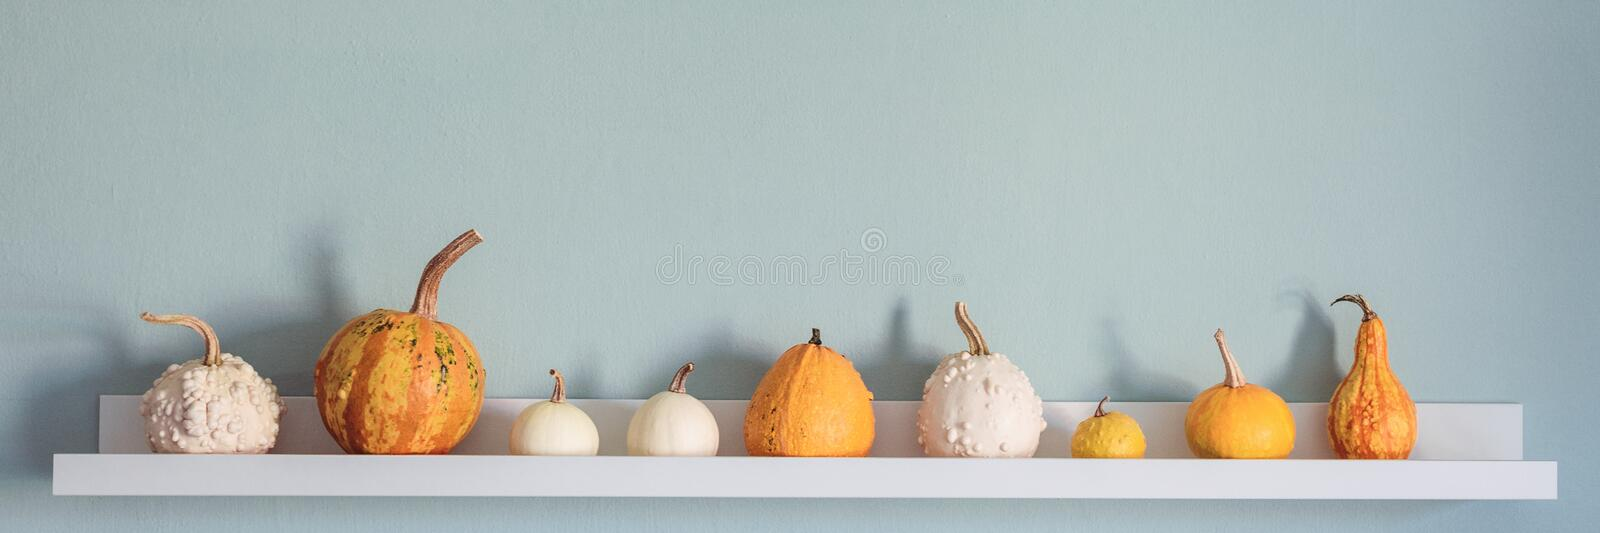 Happy Thanksgiving Background. Selection of various pumpkins on white shelf against pastel turquoise colored wall. Modern seasonal room decoration. Pumpkins royalty free stock images